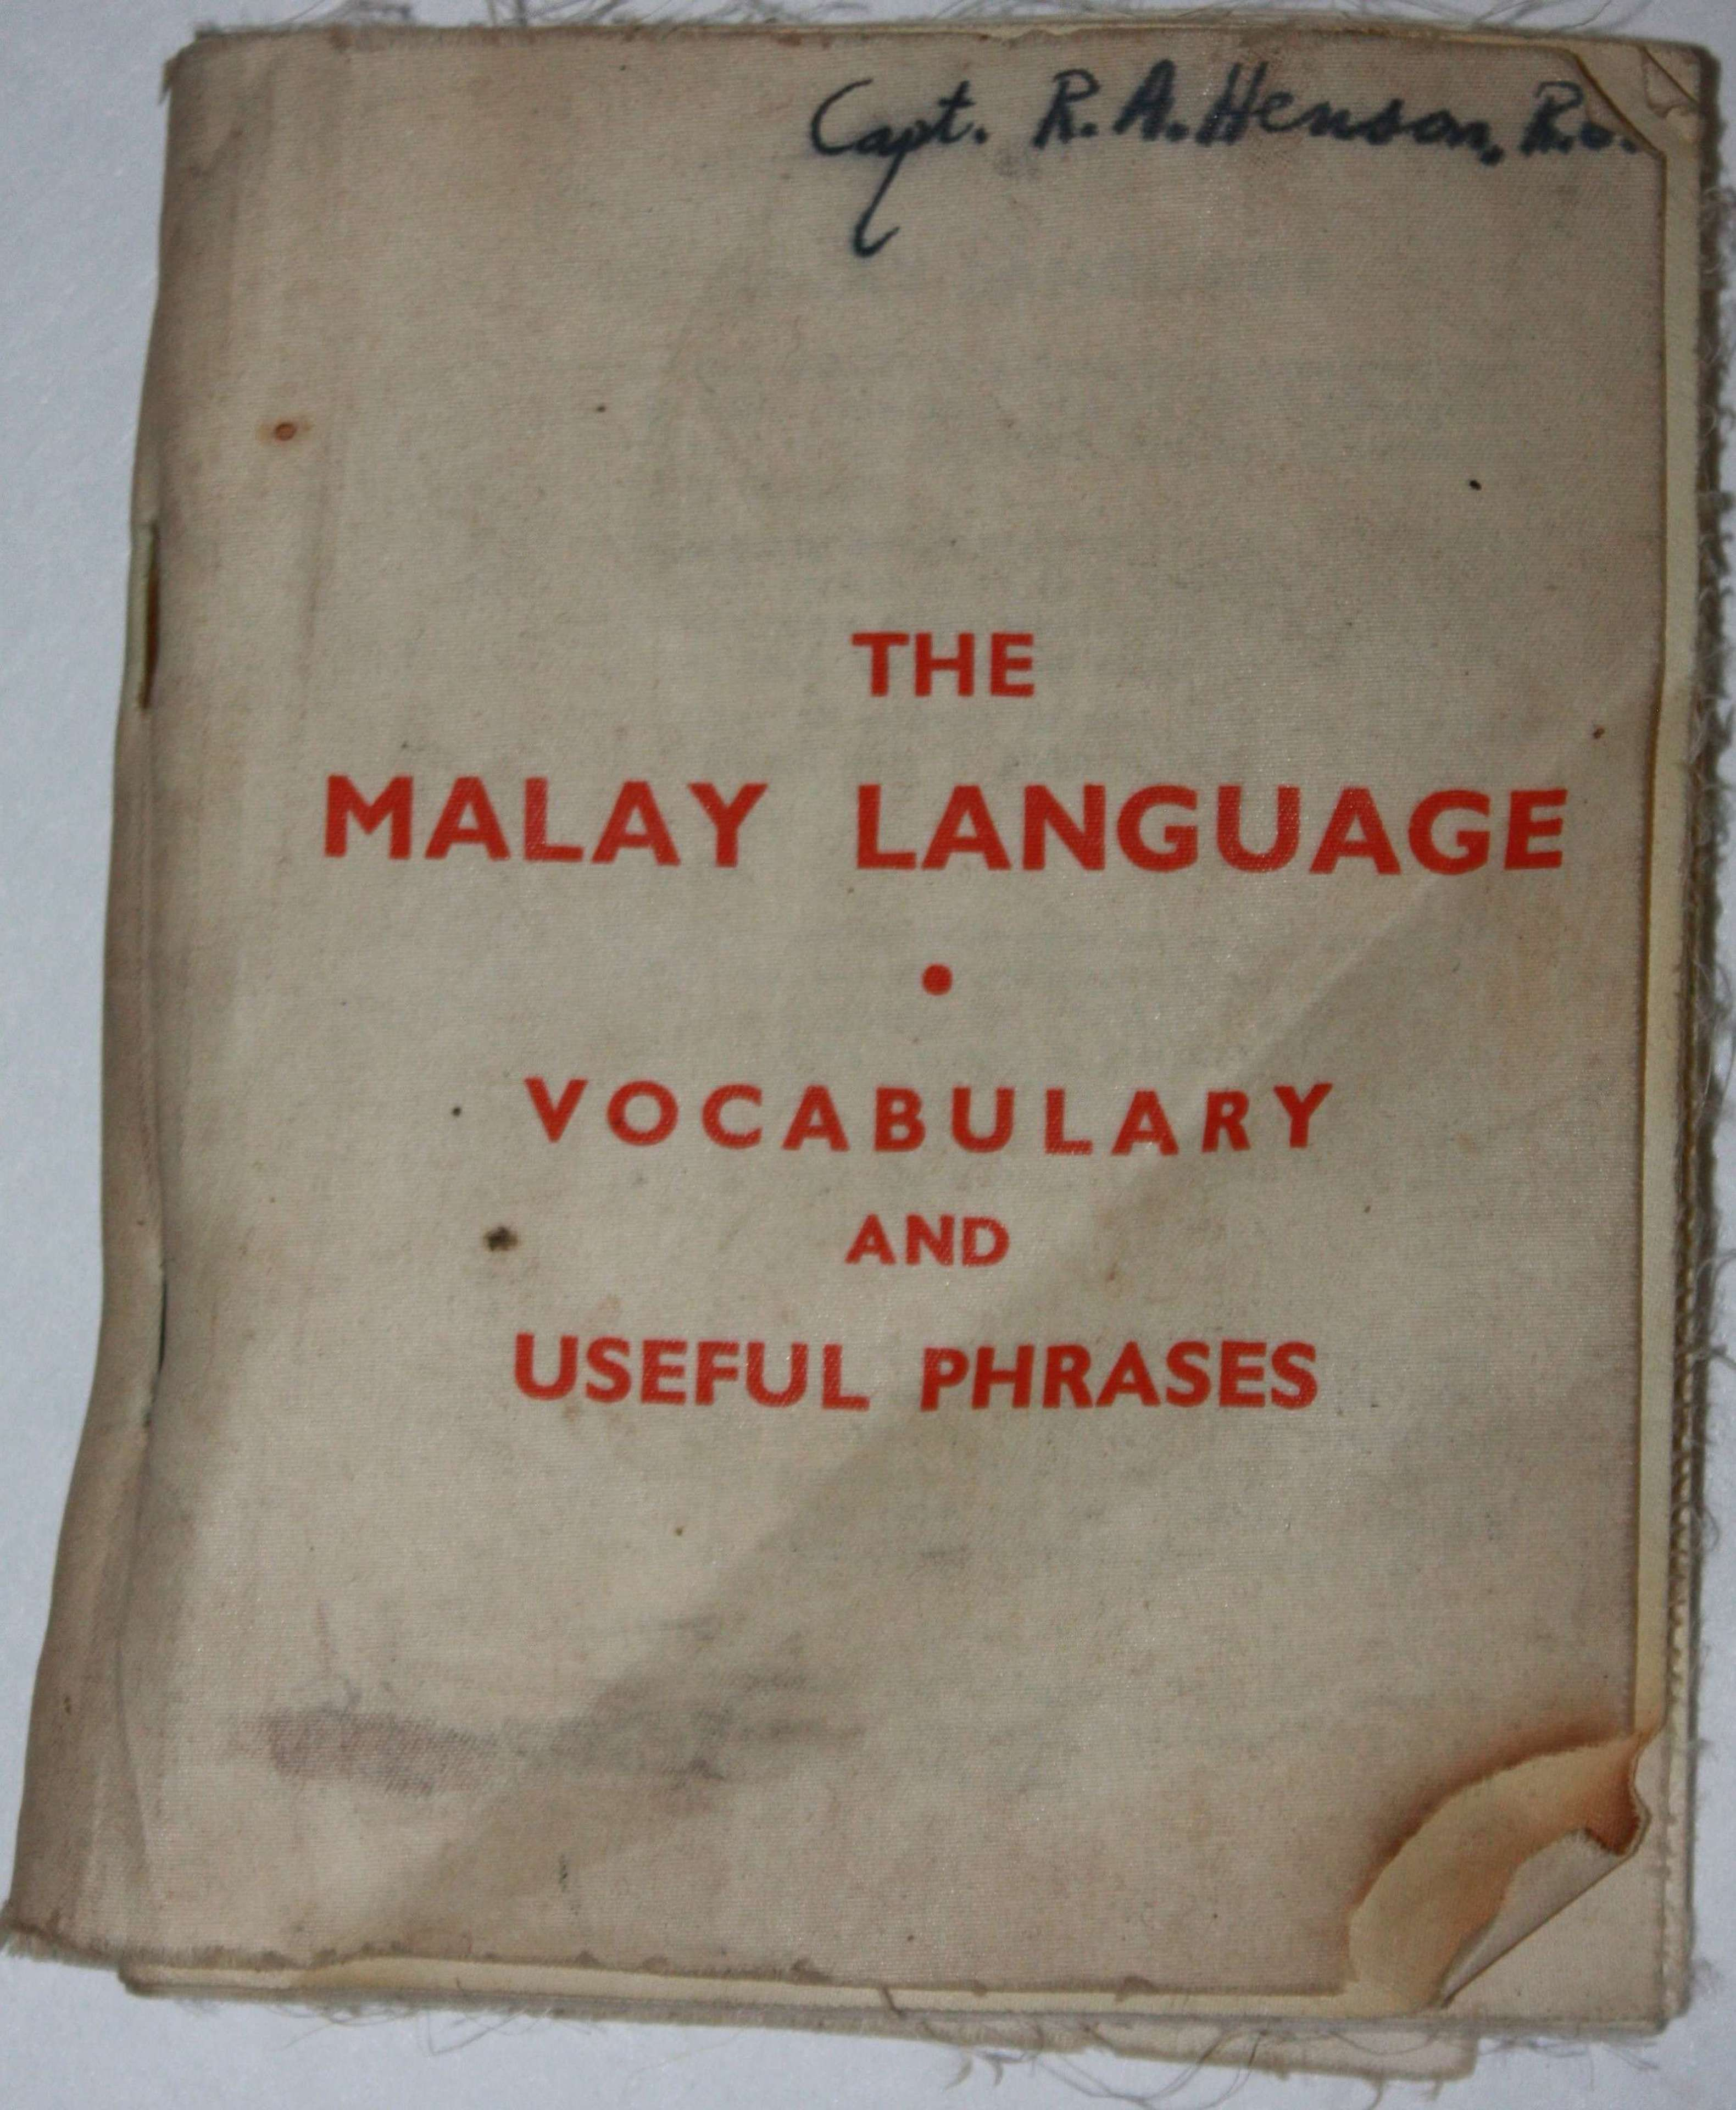 A MALAYA LANGUAGE AND VOCABULARY SILK BOOKLET CAPT R A HENSON